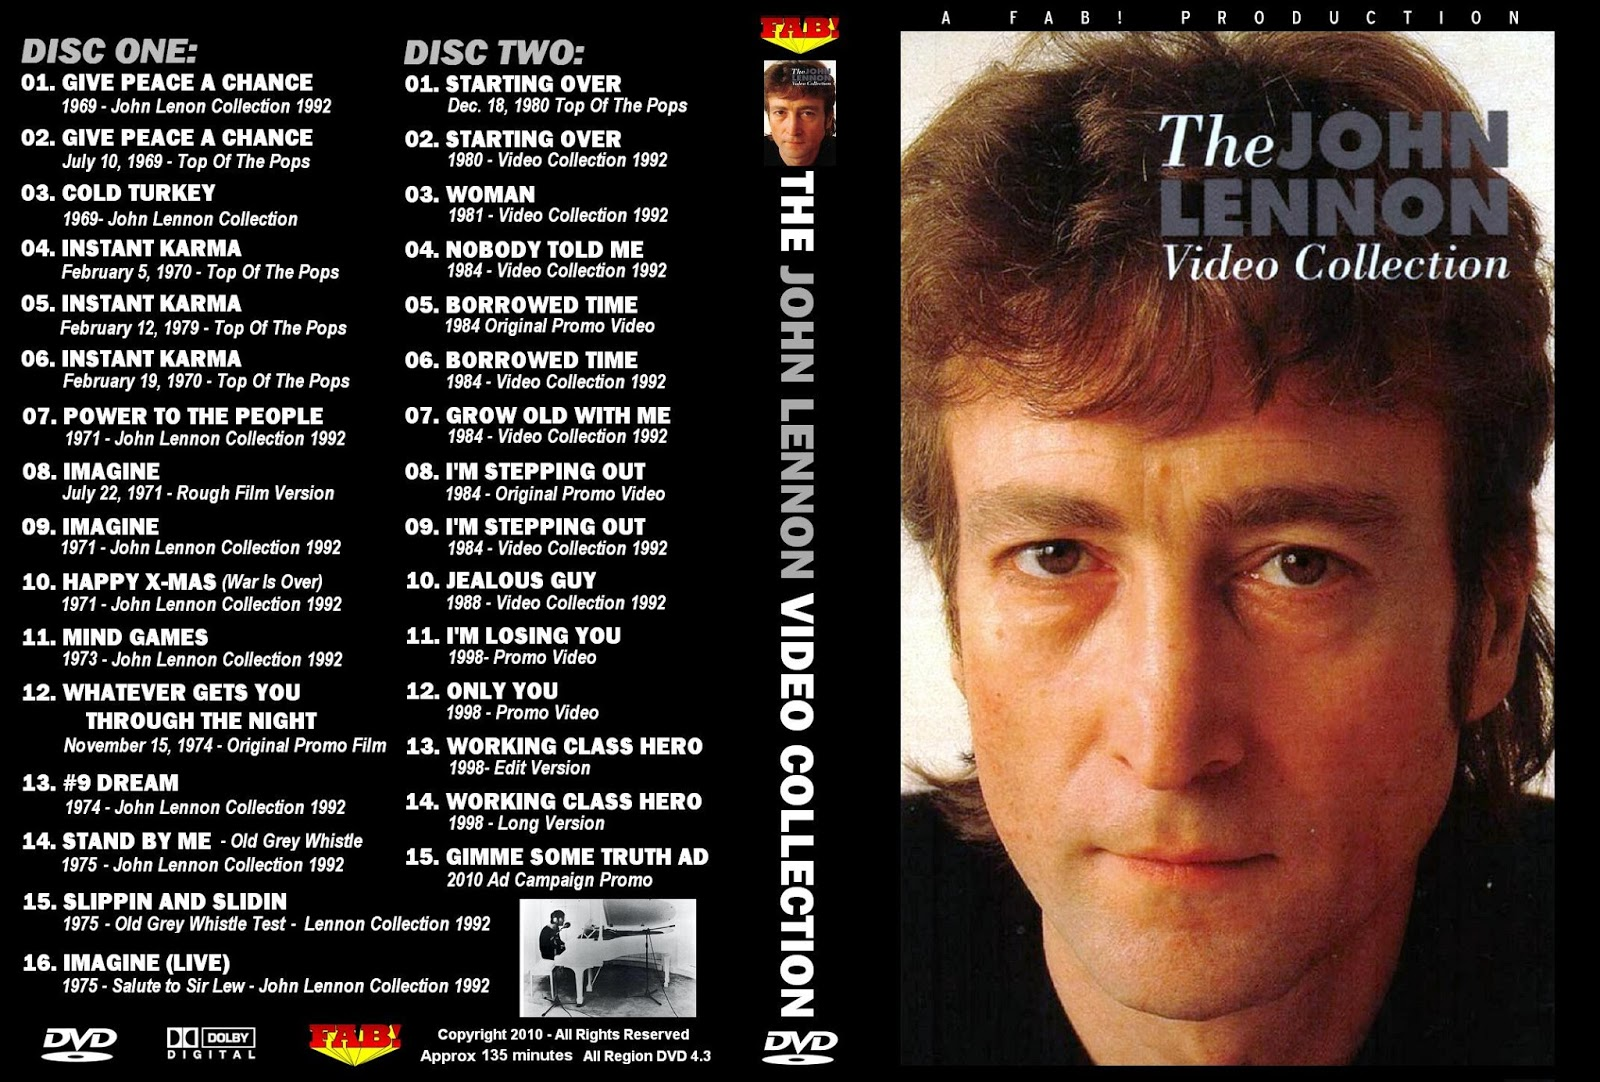 John Lennon - The Video Collection 2XDVD